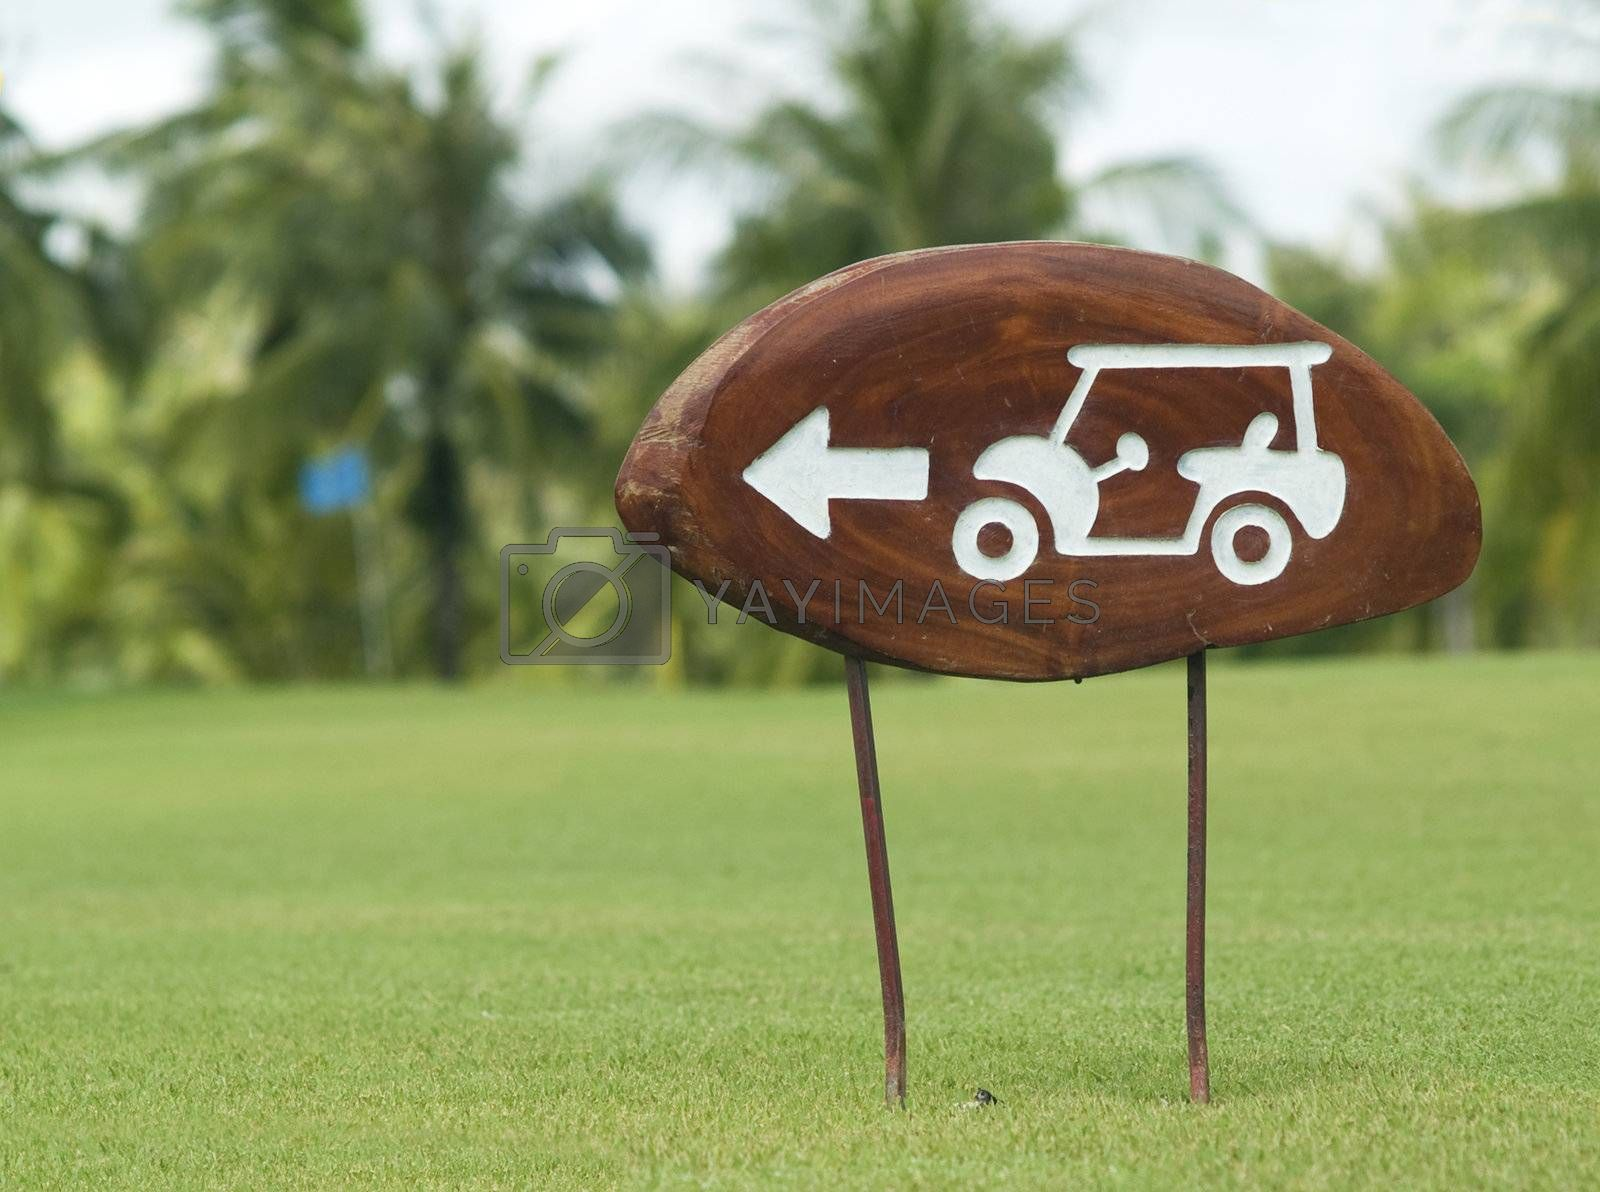 Sign on a golf course by epixx